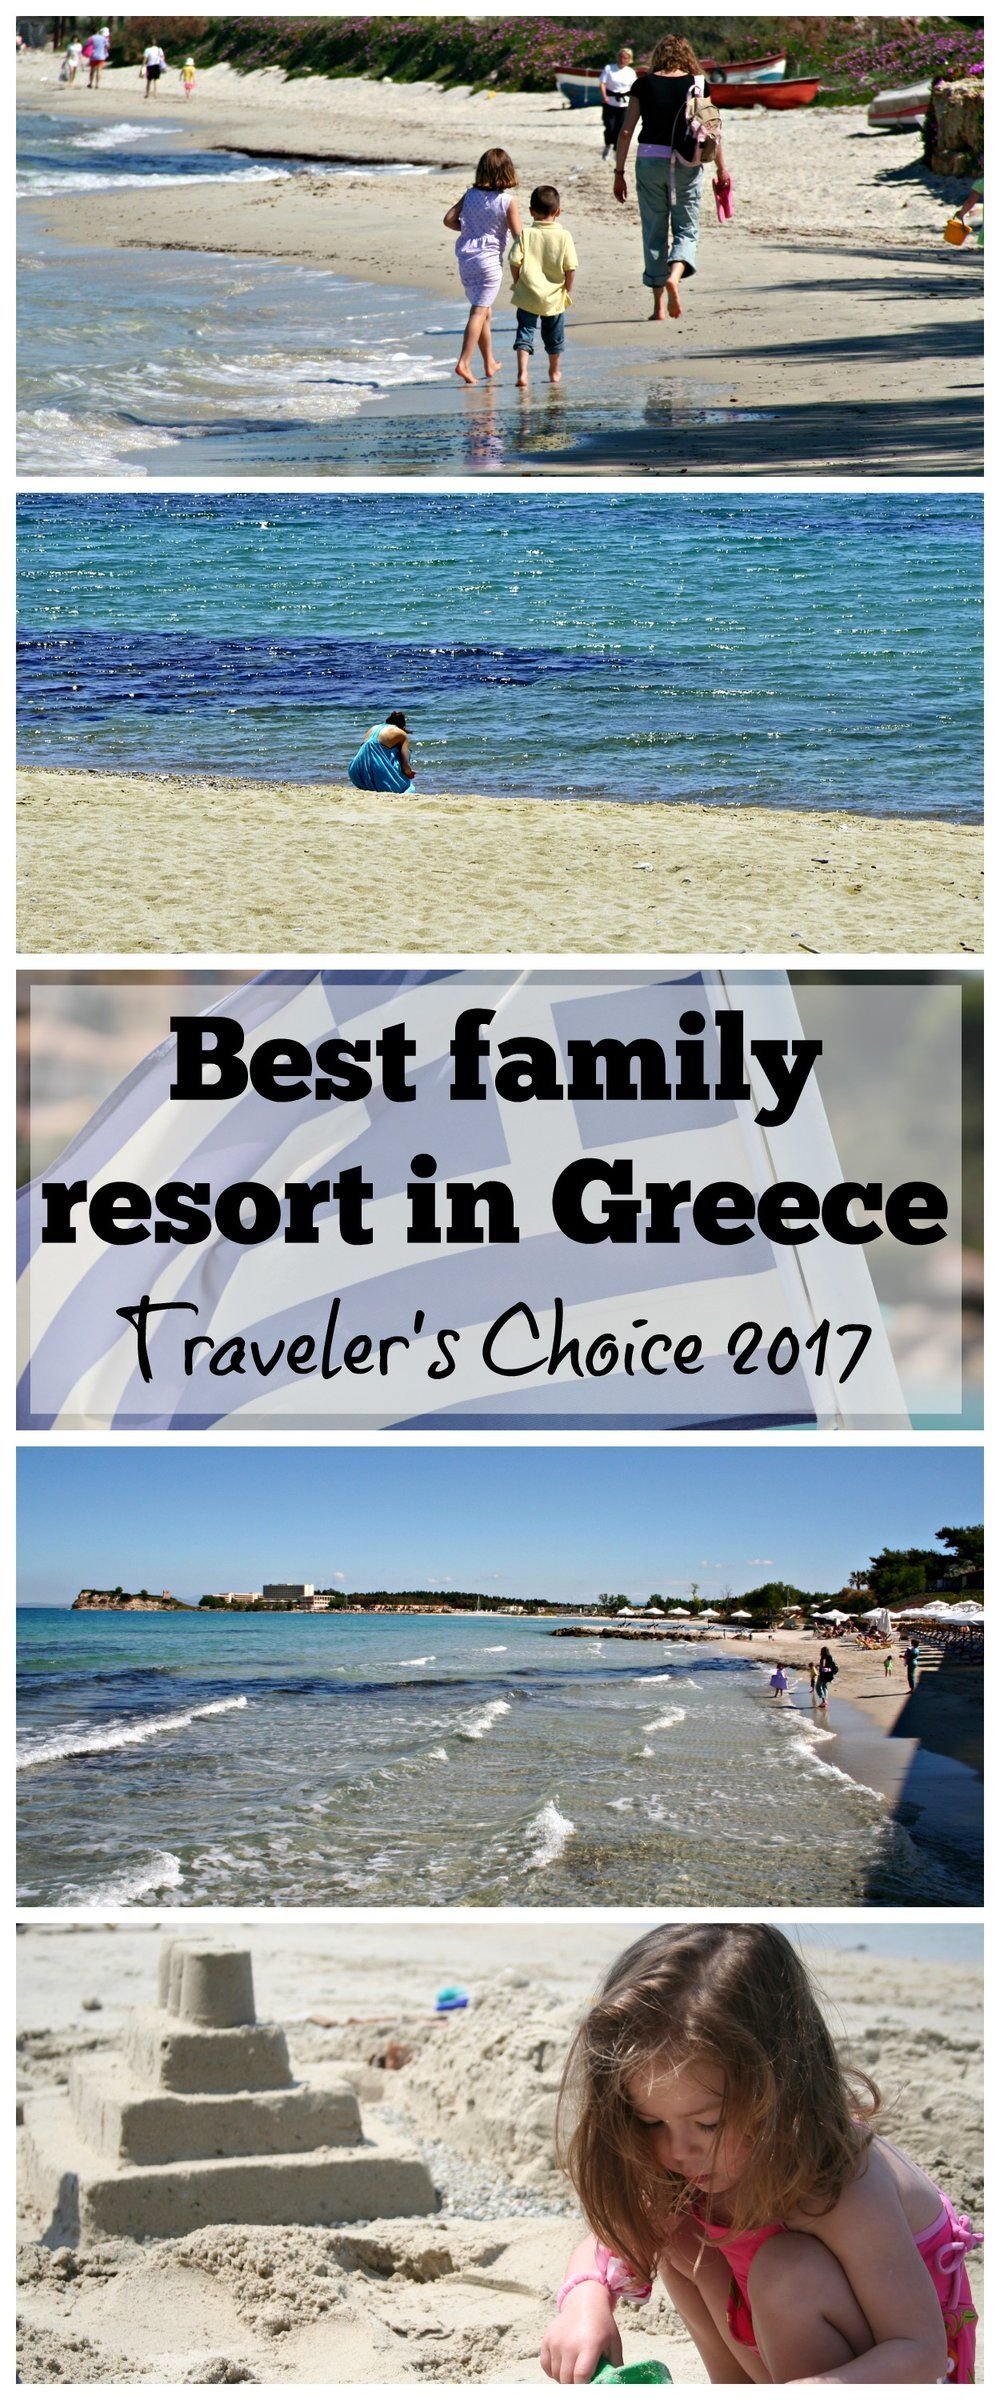 Sani Beach Is 1 Of Top Hotel For Families In Greece In 2017 One Of The Best Luxury Resorts In Europe And In The World Sani Resort Prides Itself On Outstand